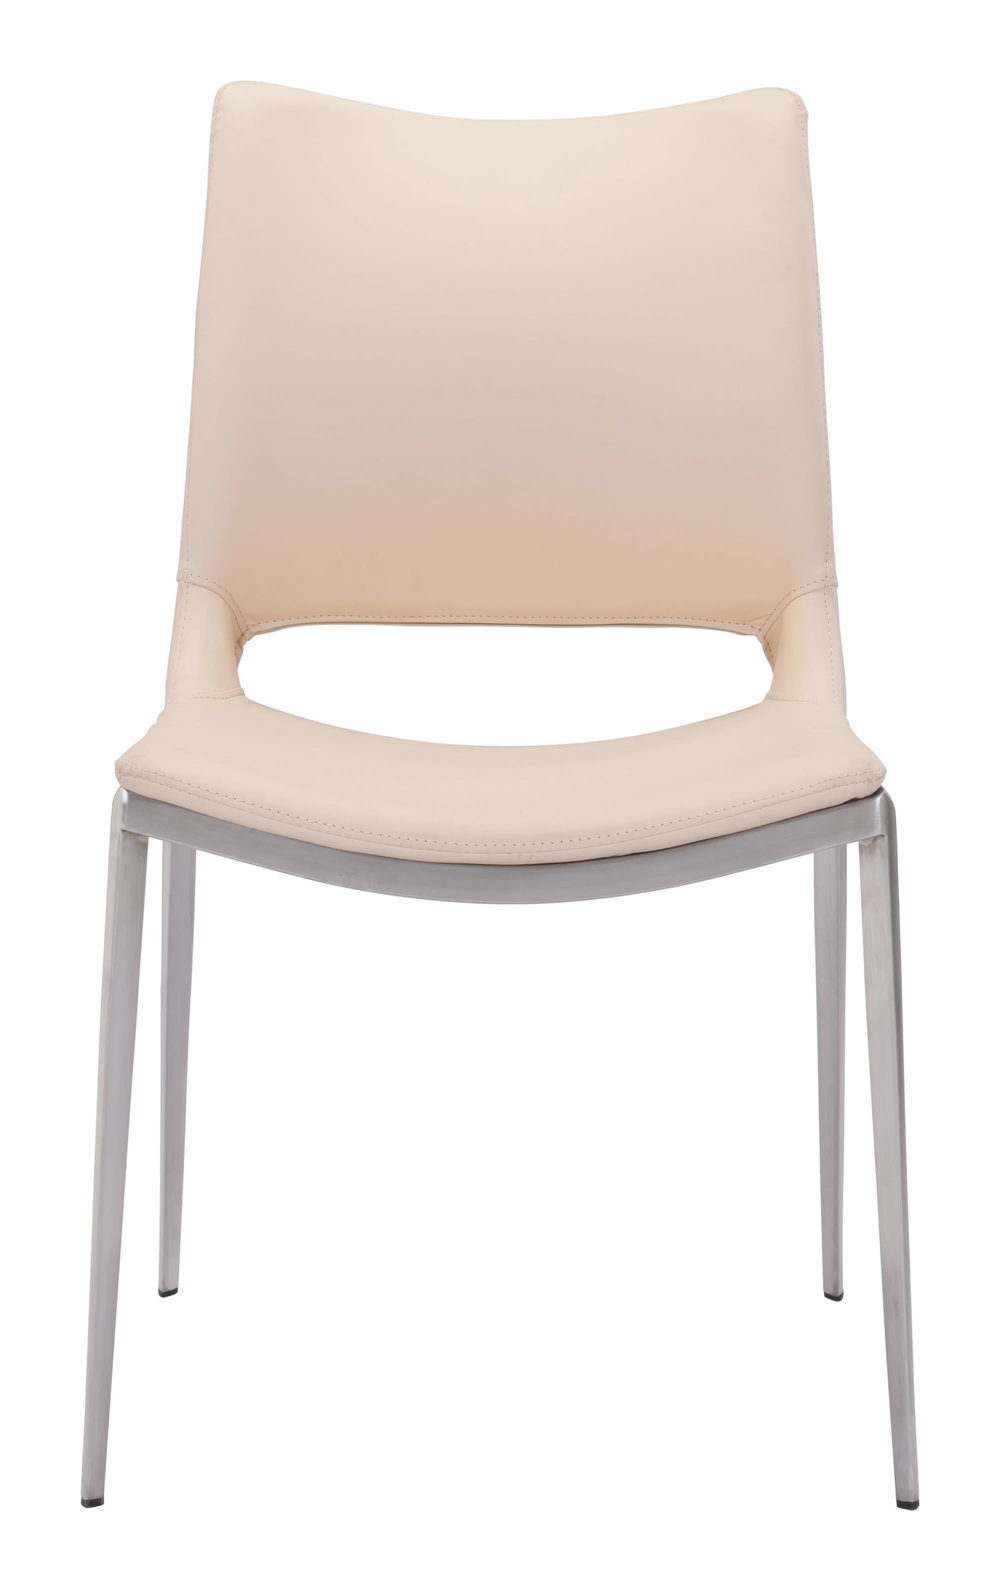 Zuo Modern Contemporary - Ace Dining Chair - Set of 2 - Light Pink & Silver